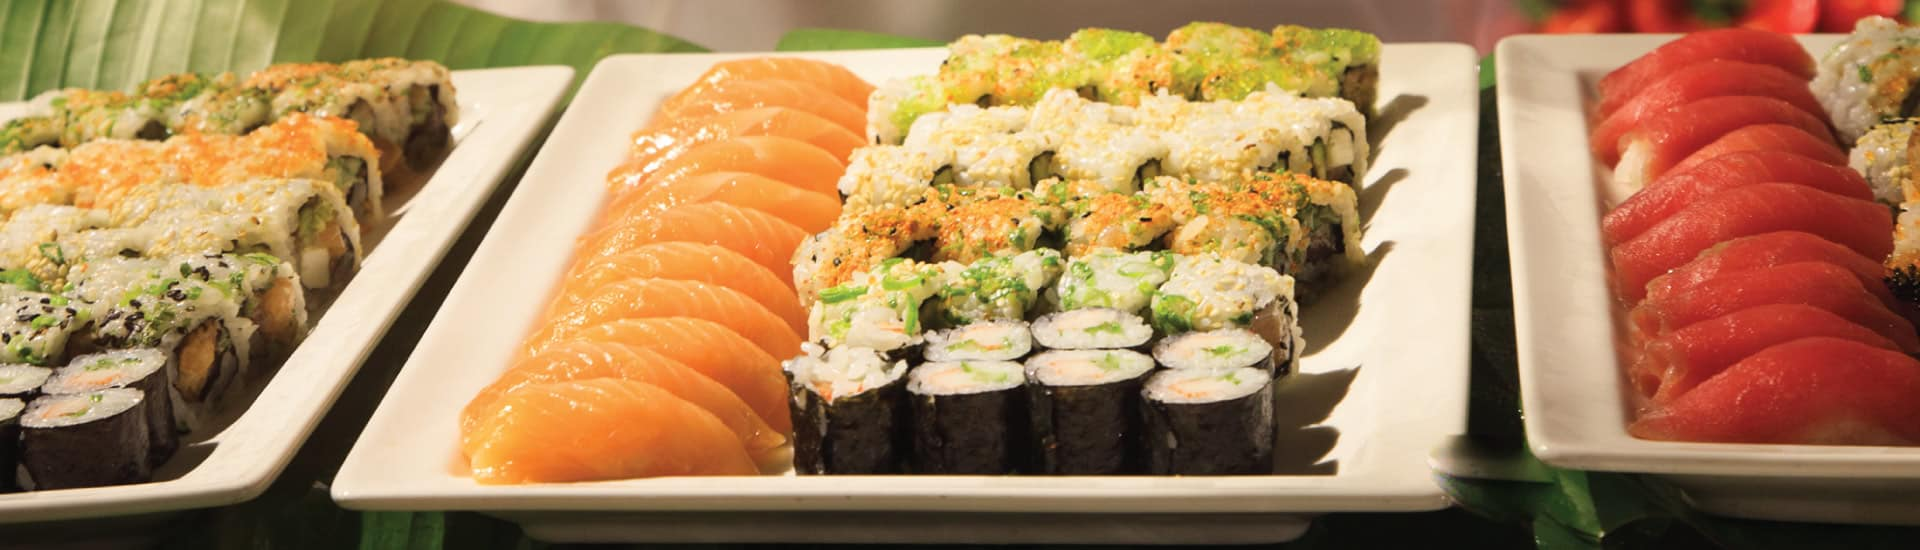 Delicious Japanese Cuisine in Abu Dhabi